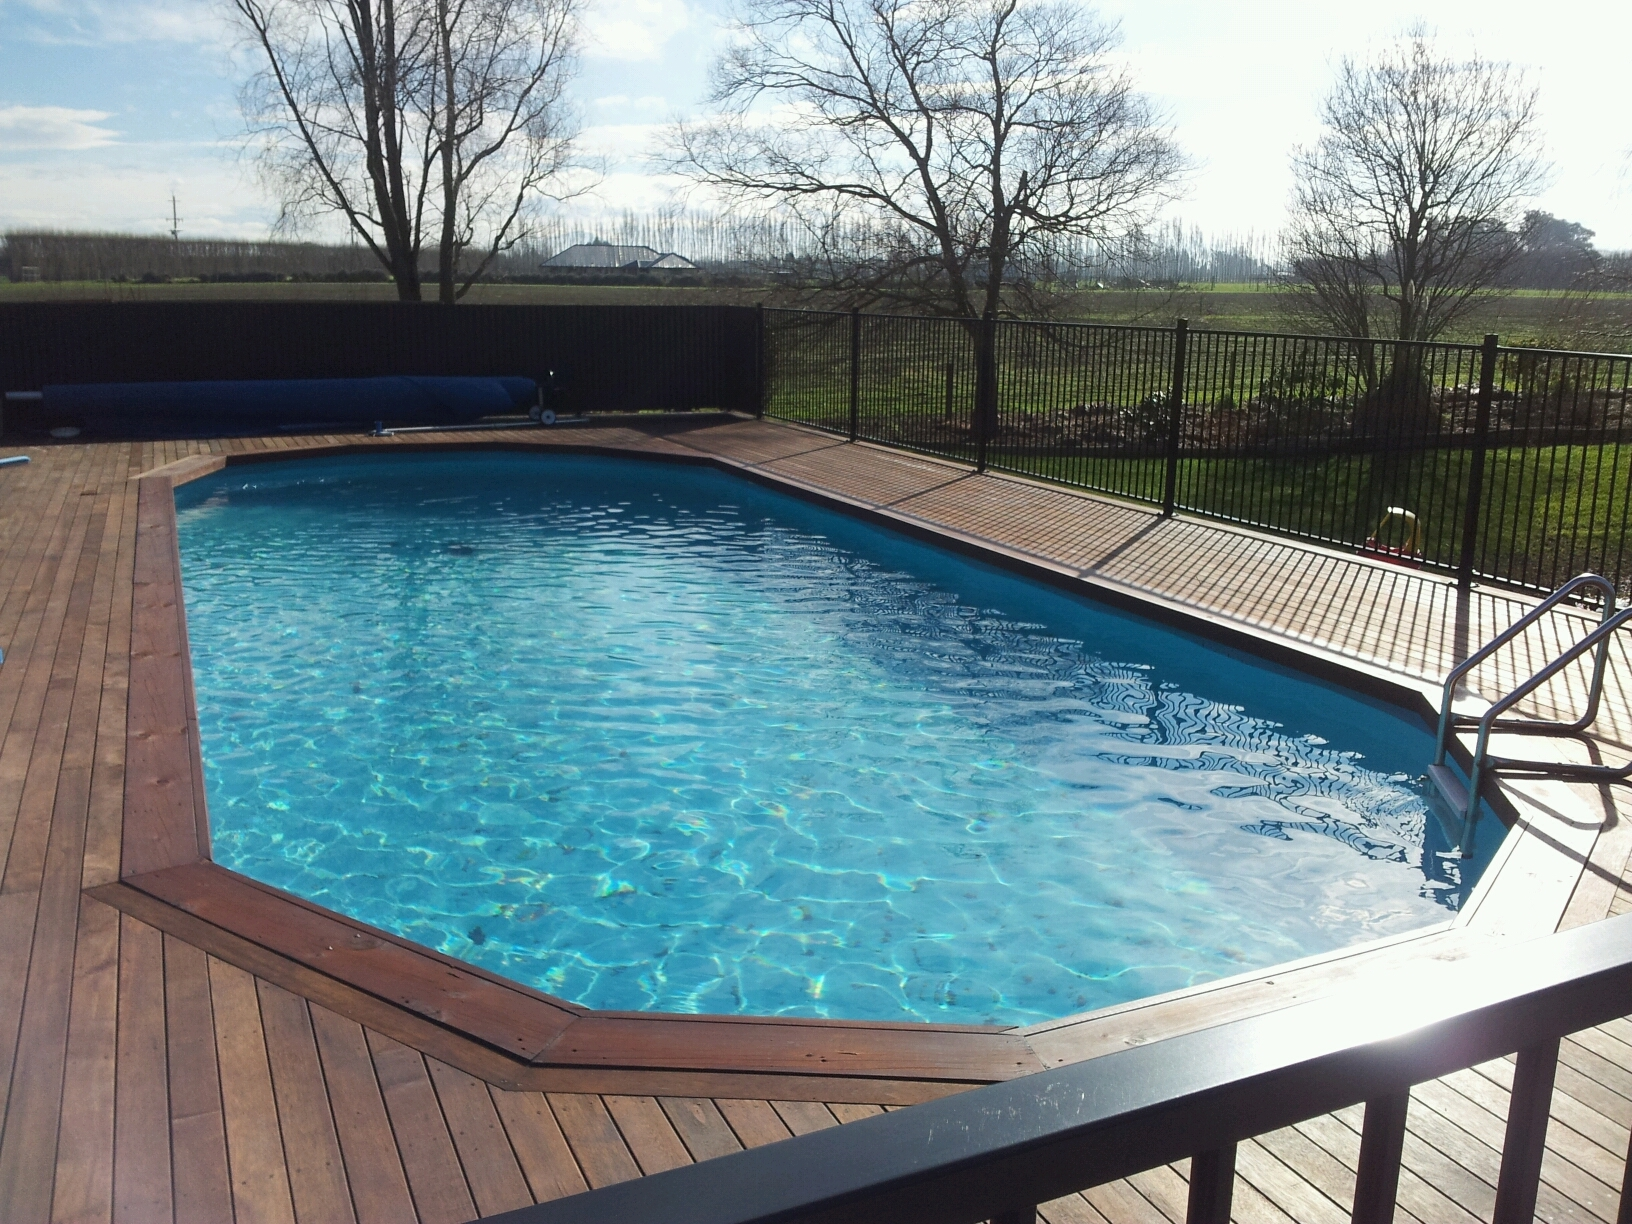 Swimming pools pool land supplier of spa pools for Garden pool liners nz